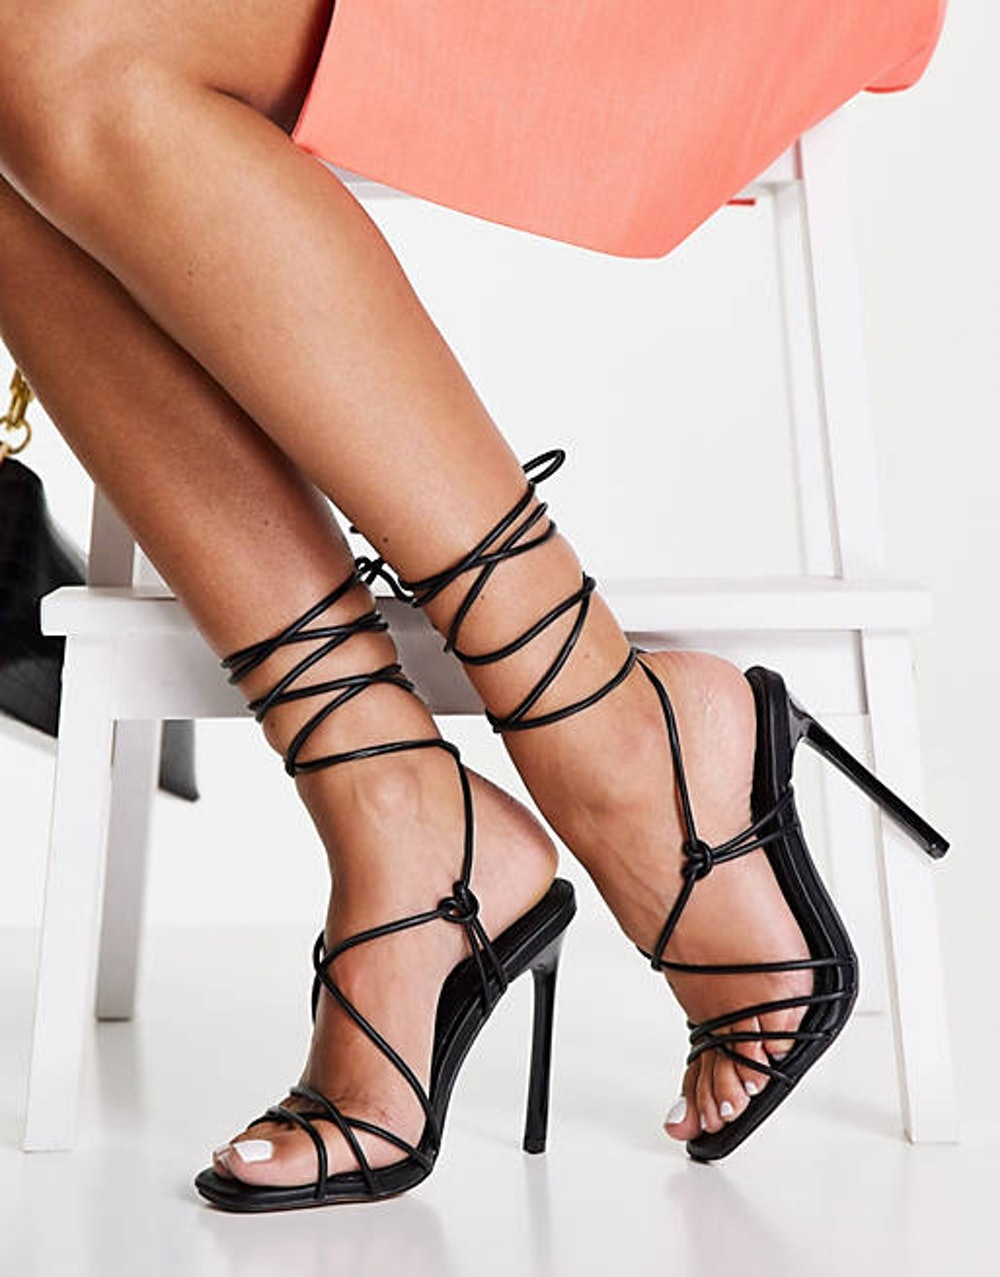 Topshop Robin Strappy High Heeled Sandals in Black